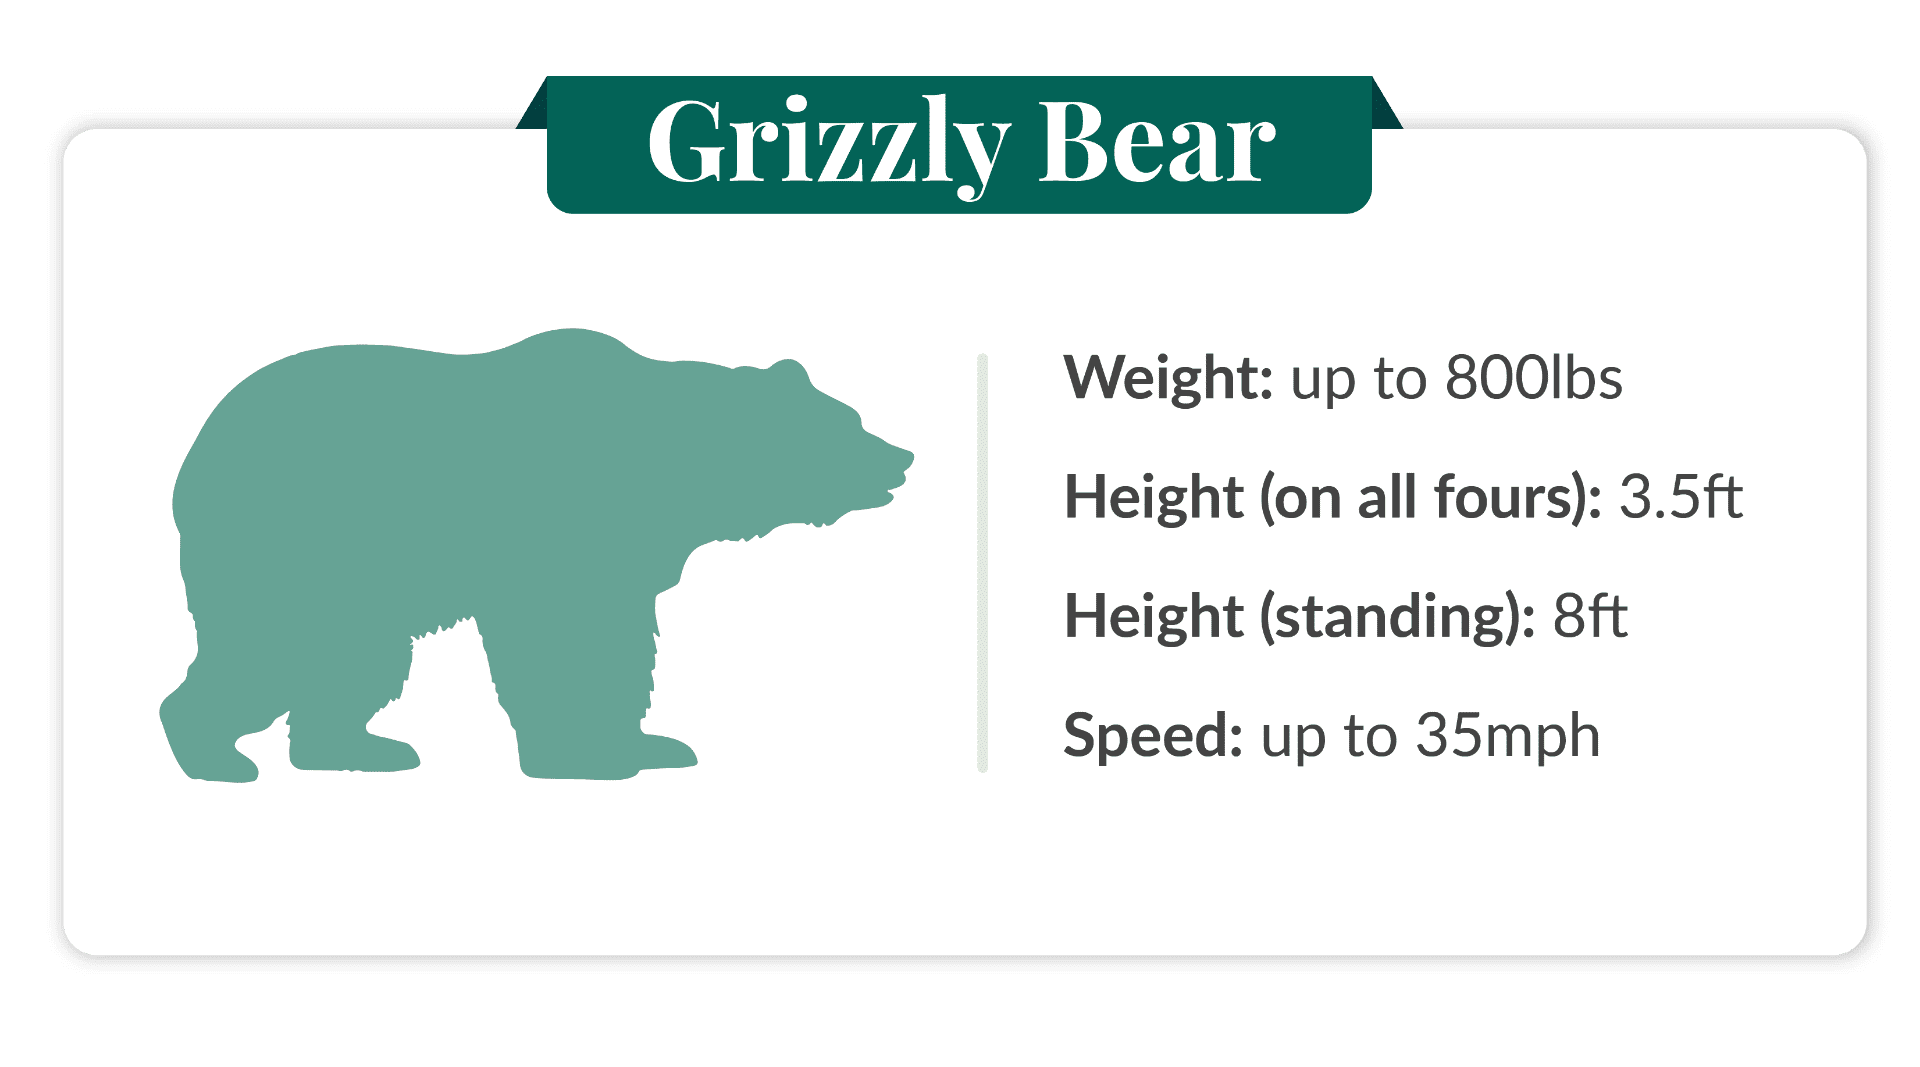 how fast can a grizzly bear run